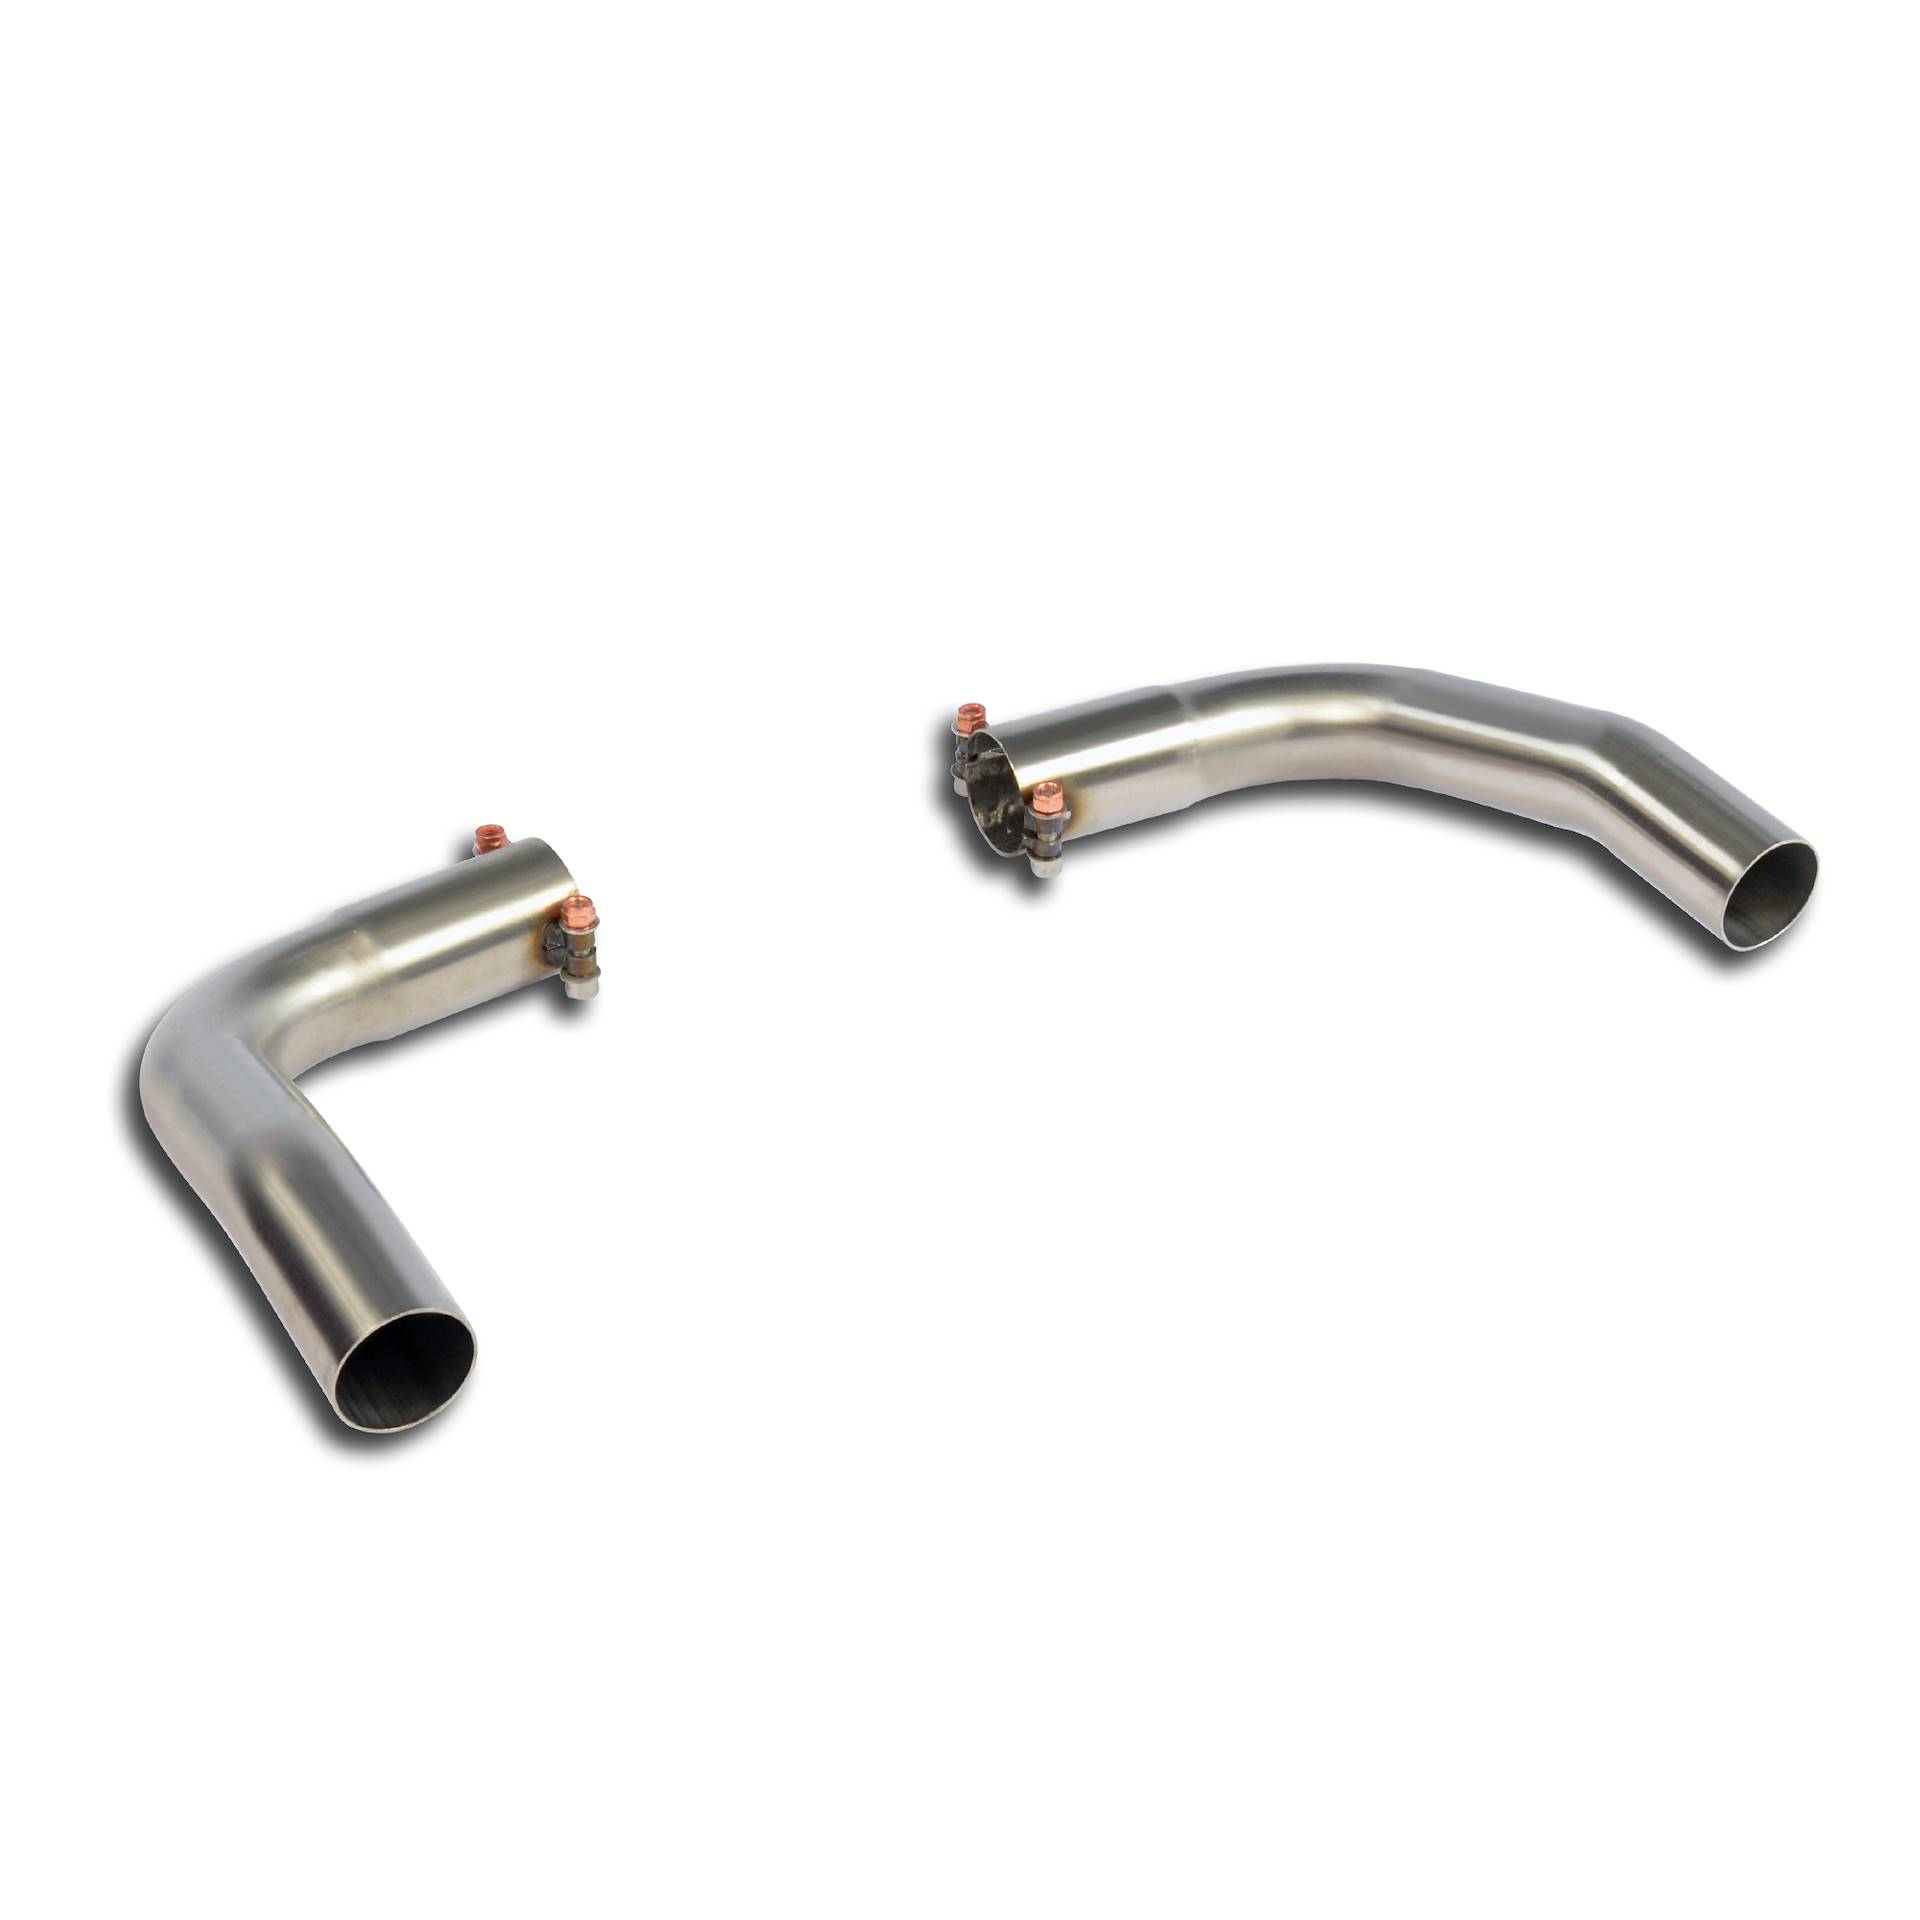 Mercedes - MERCEDES X156 GLA 220 CDI 4-Matic (2143cc diesel, 177 Hp) 2014 -> Exit pipes kit Right - Left, performance exhaust systems